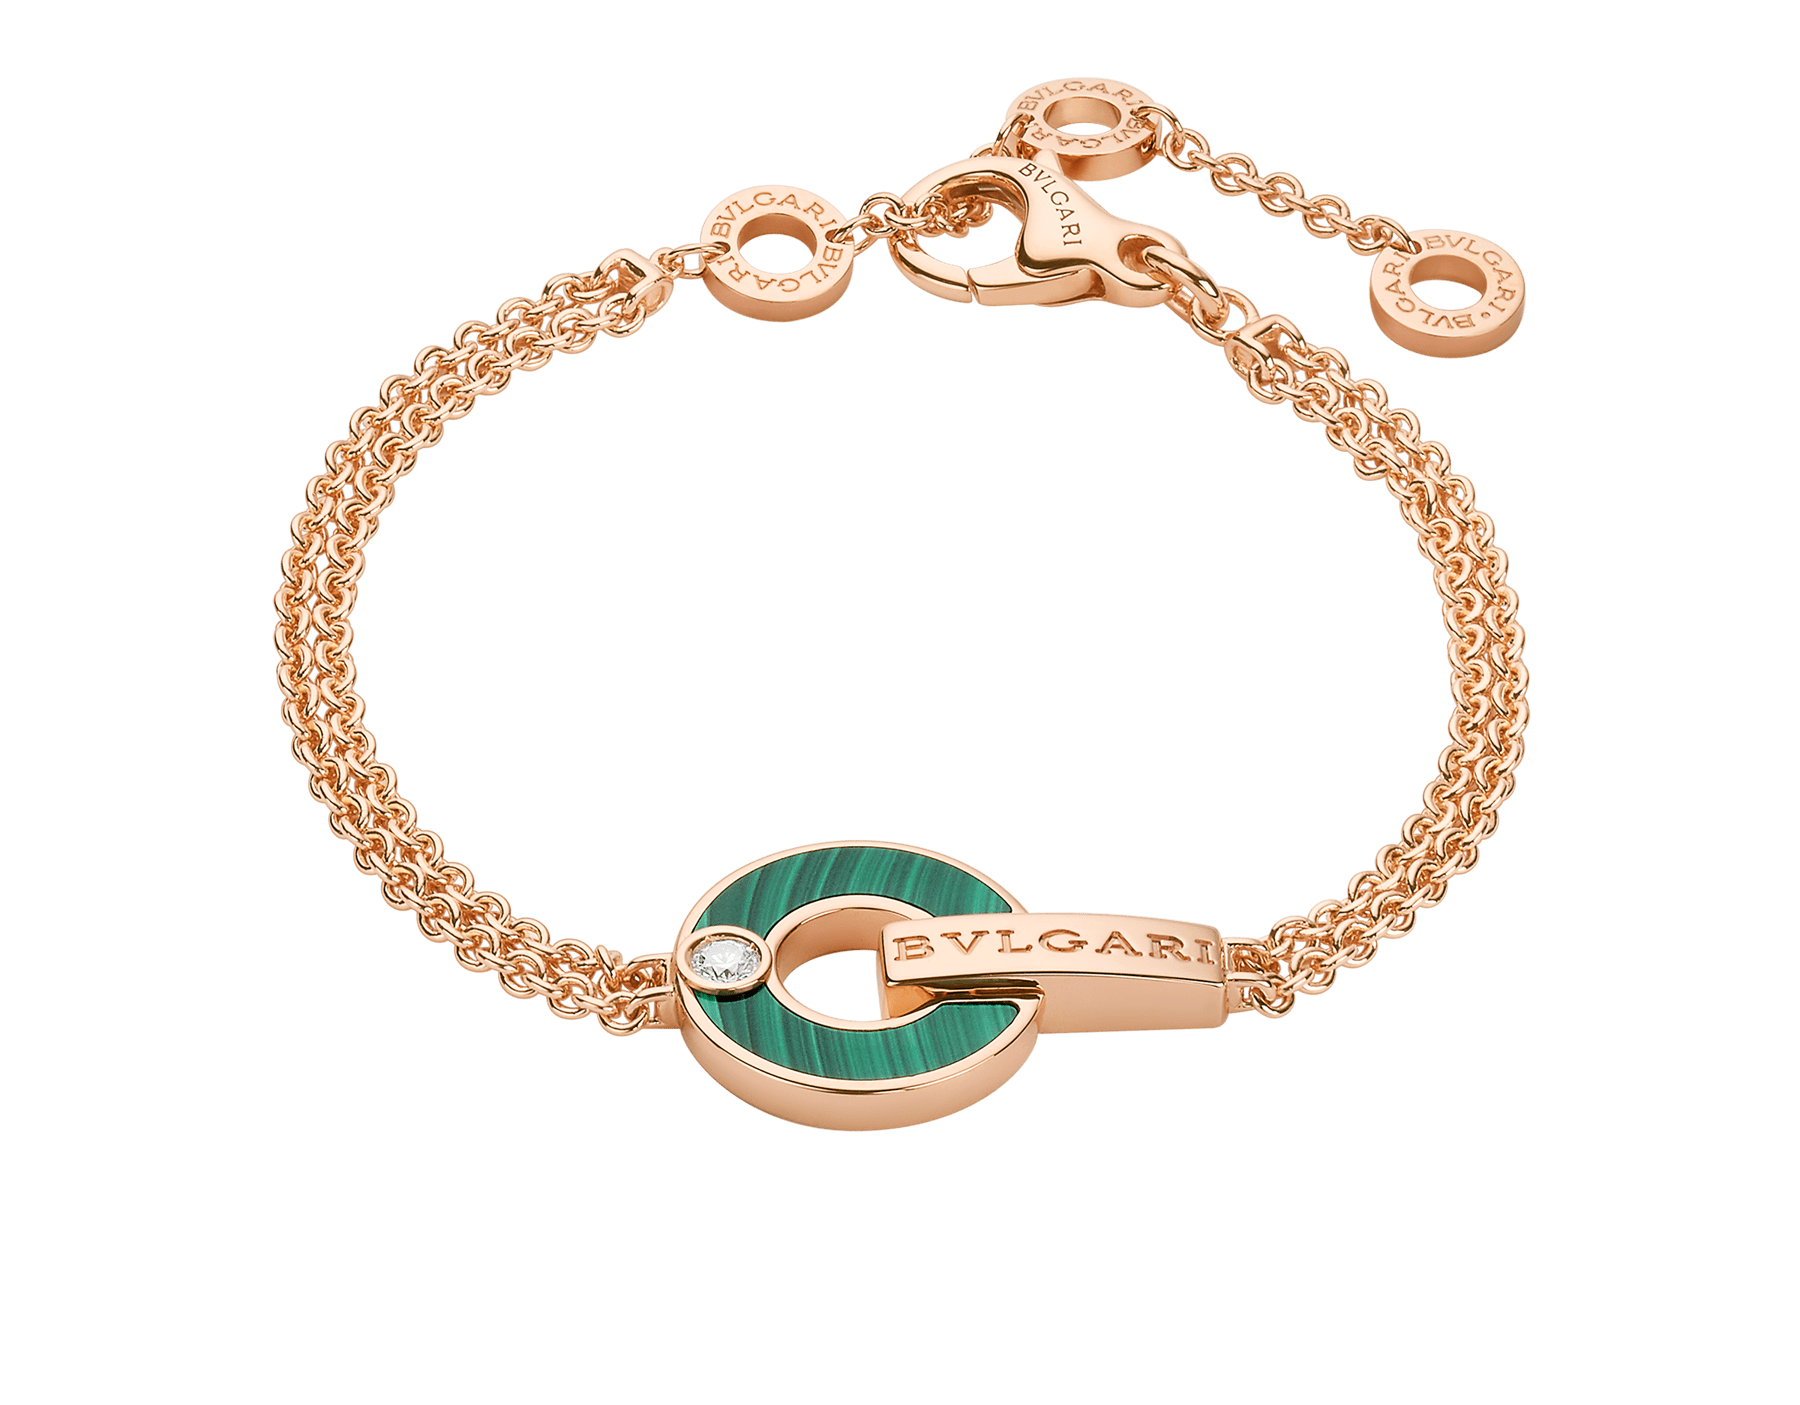 BVLGARI BVLGARI Openwork 18 kt rose gold bracelet set with malachite elements and a round brilliant-cut diamond BR858958 image 1